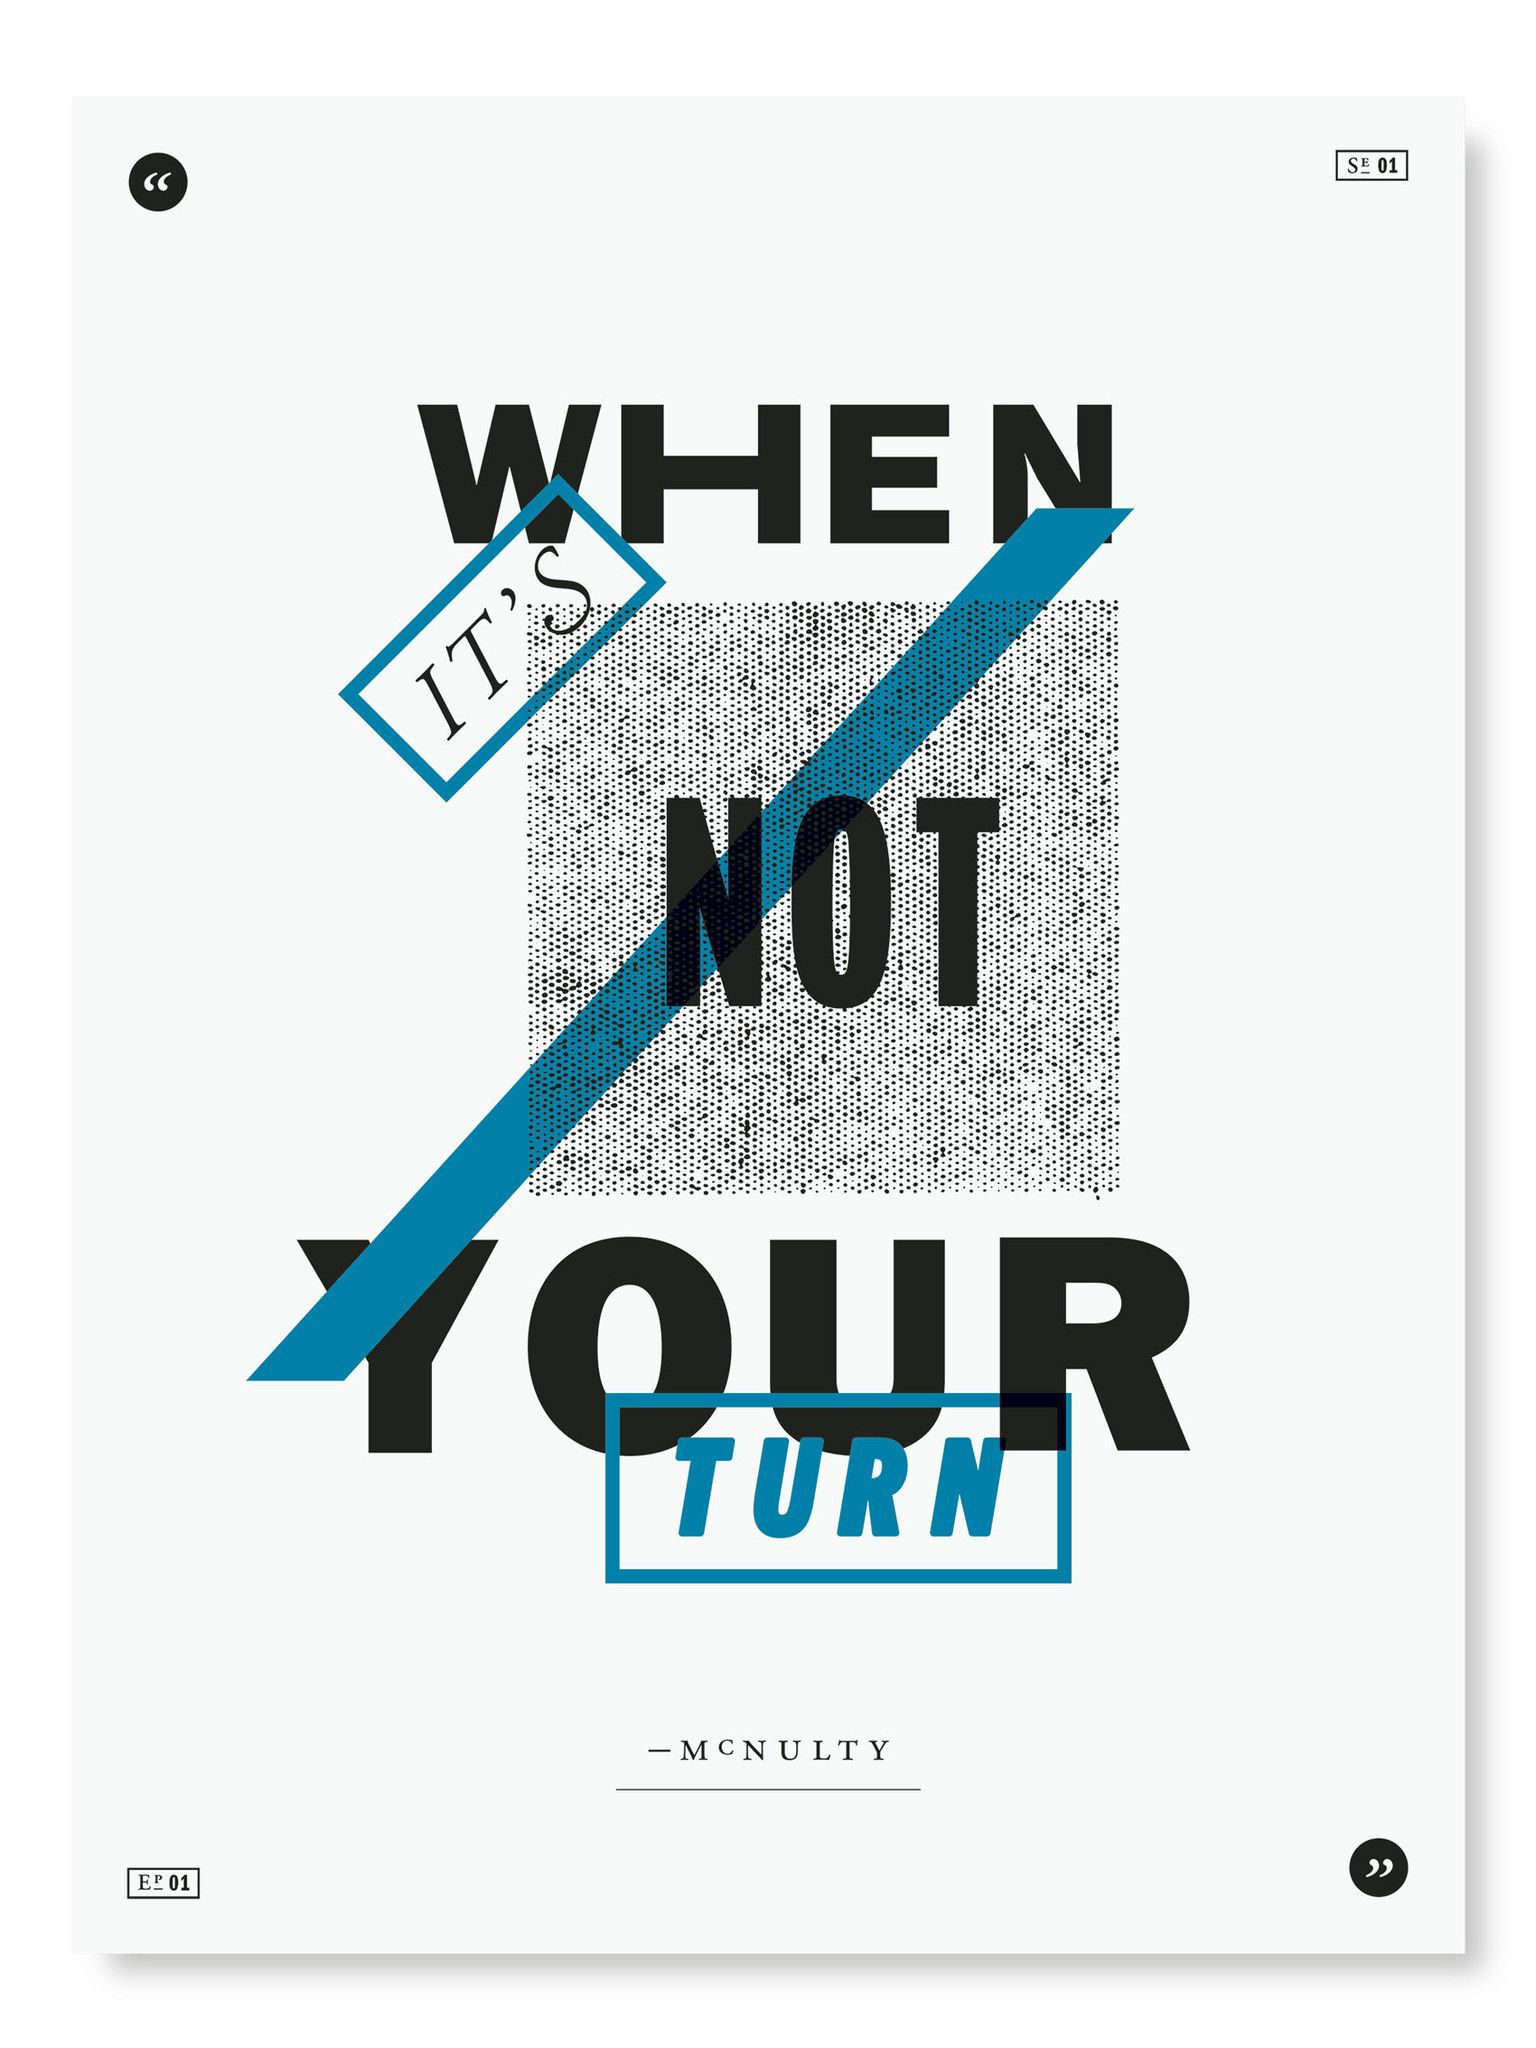 The Wire poster project   טלויזיה - הסמויה   Pinterest   Typo